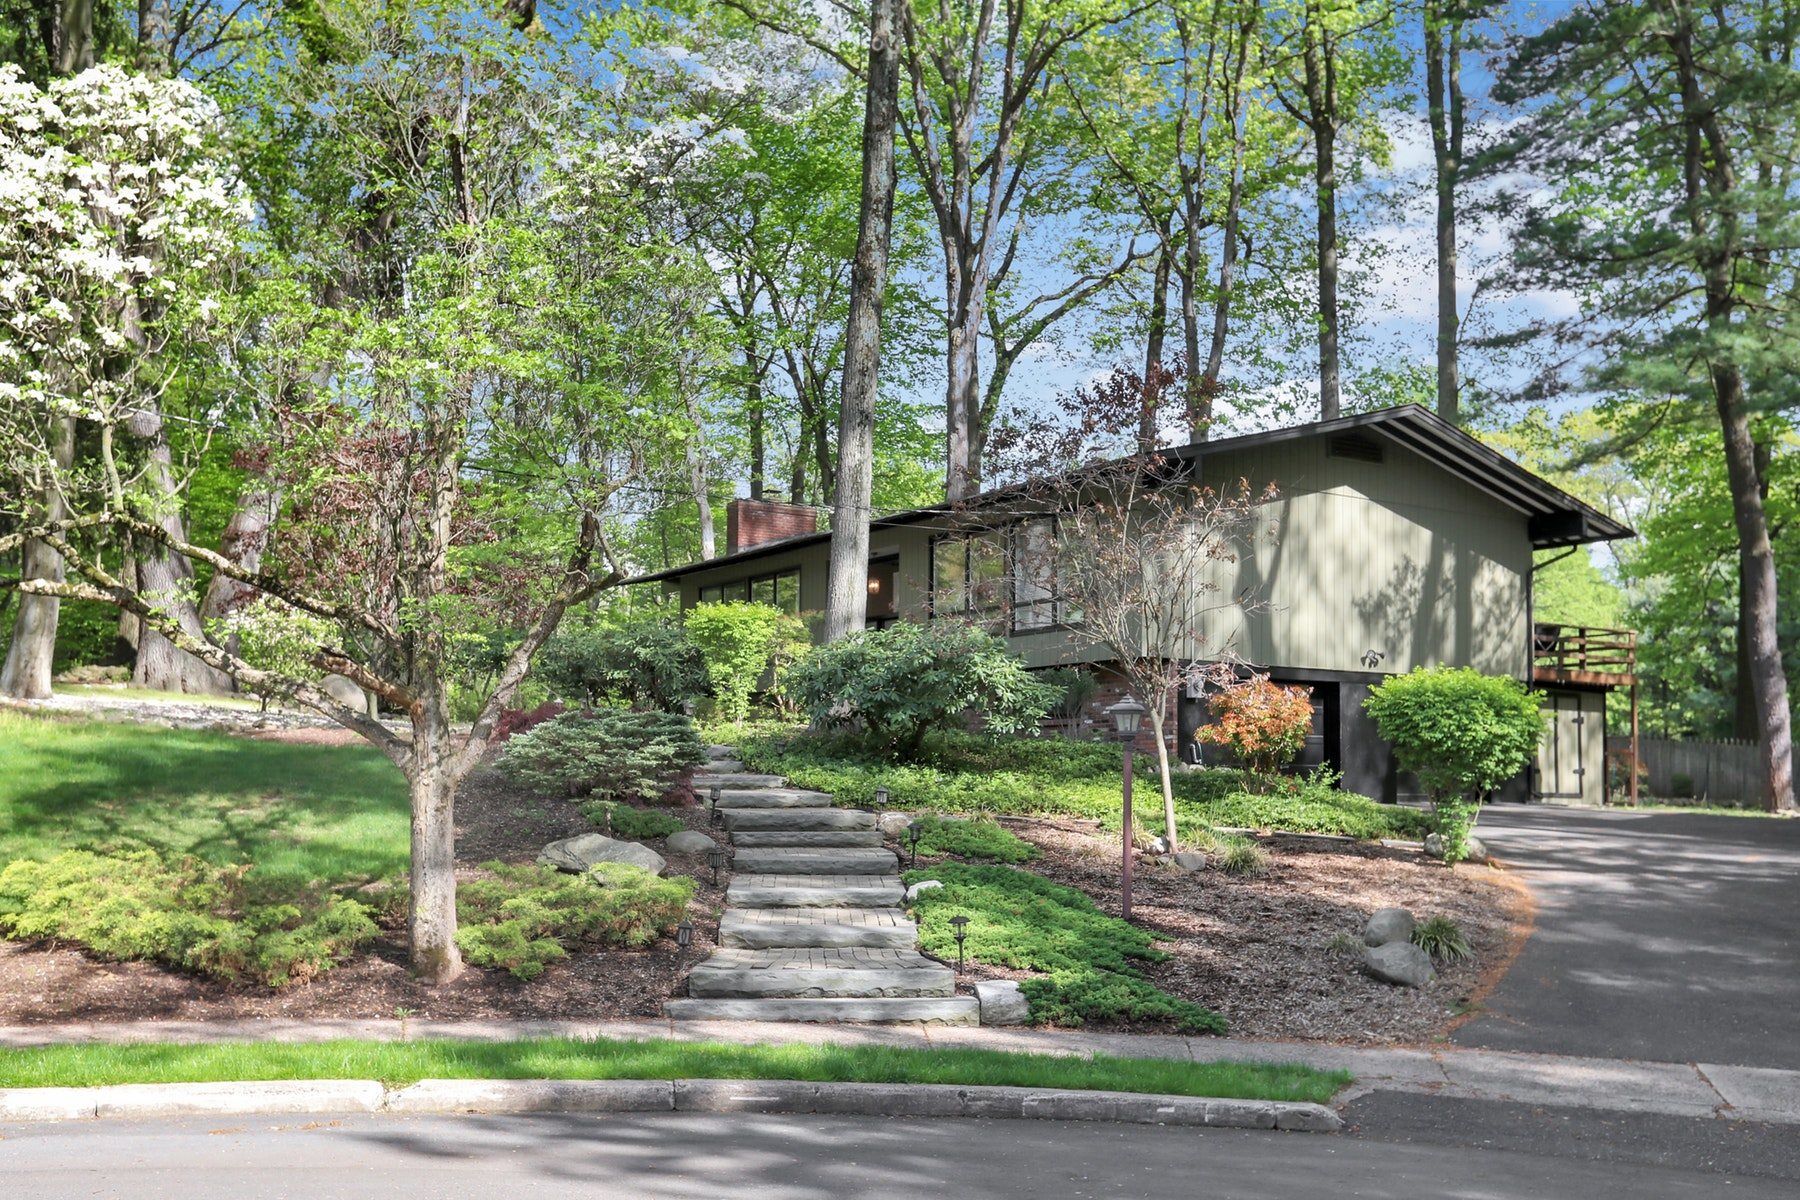 Single Family Home for Sale at 31 Addison Terrace Old Tappan, New Jersey 07675 United States